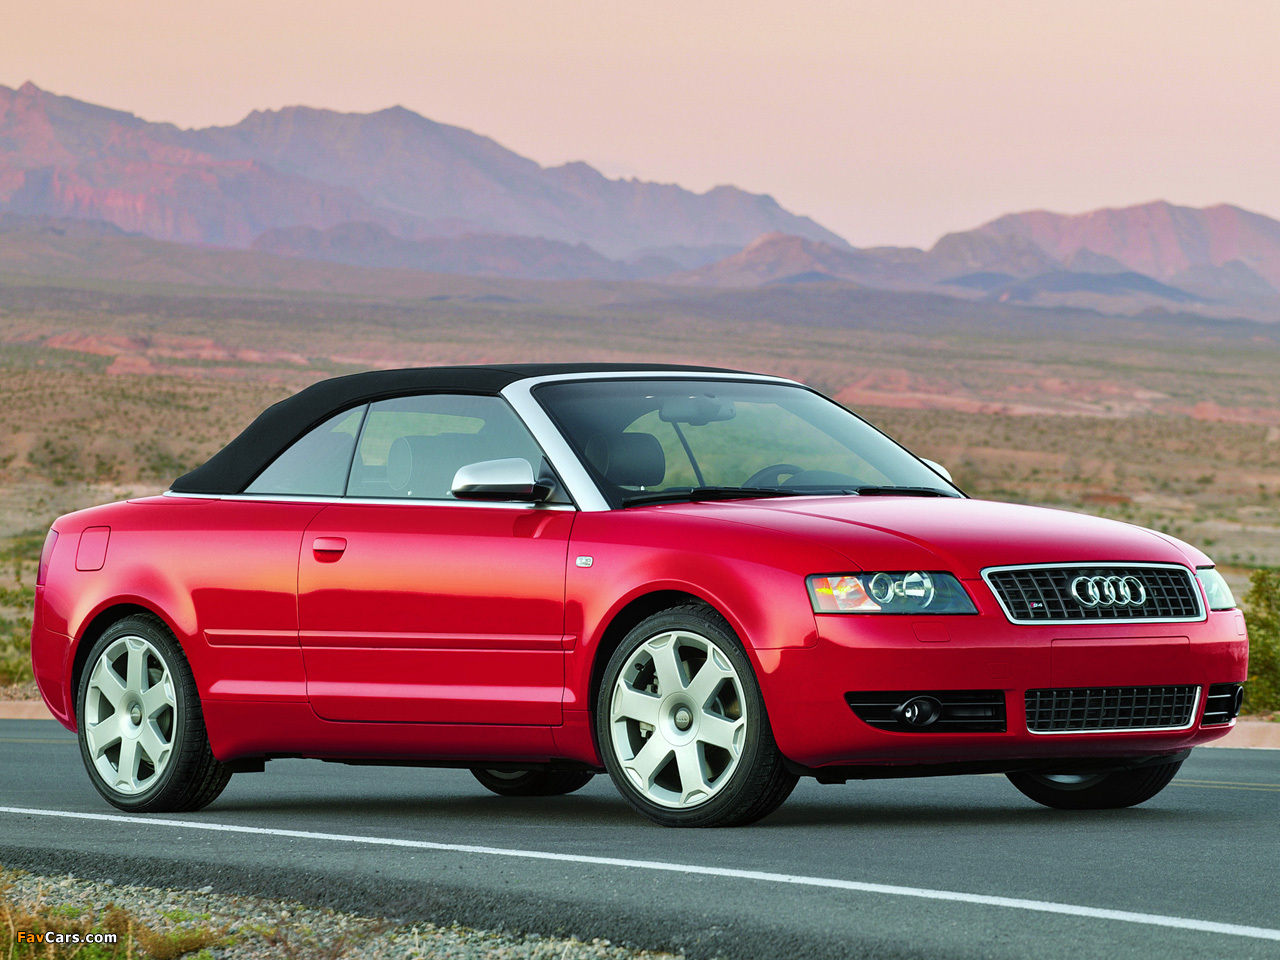 2002 Audi S4 User Reviews Cargurus Where Are Fuses And Battery In Fuse Box 02 A4 Images Of Cabrio Usspec B68h 200205 1280x960